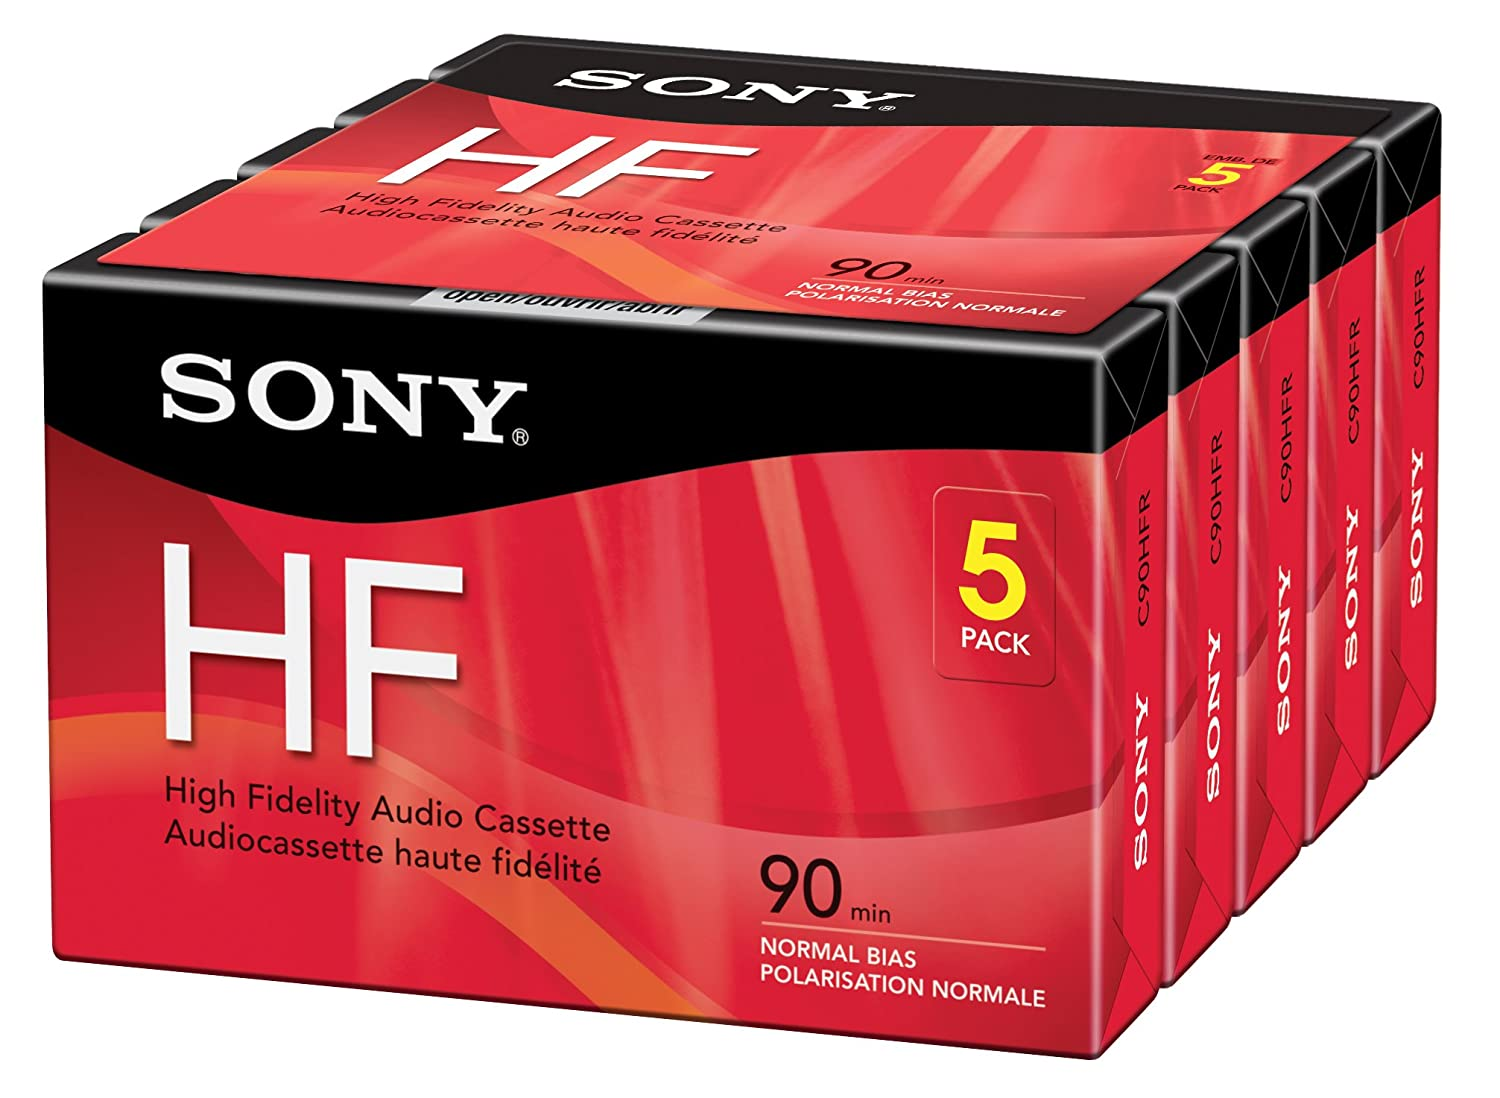 Sony 5C90HFR 90-Minute HF Cassette Recorders 5-Brick Sony Consumer Tape Accessory Consumer Accessories